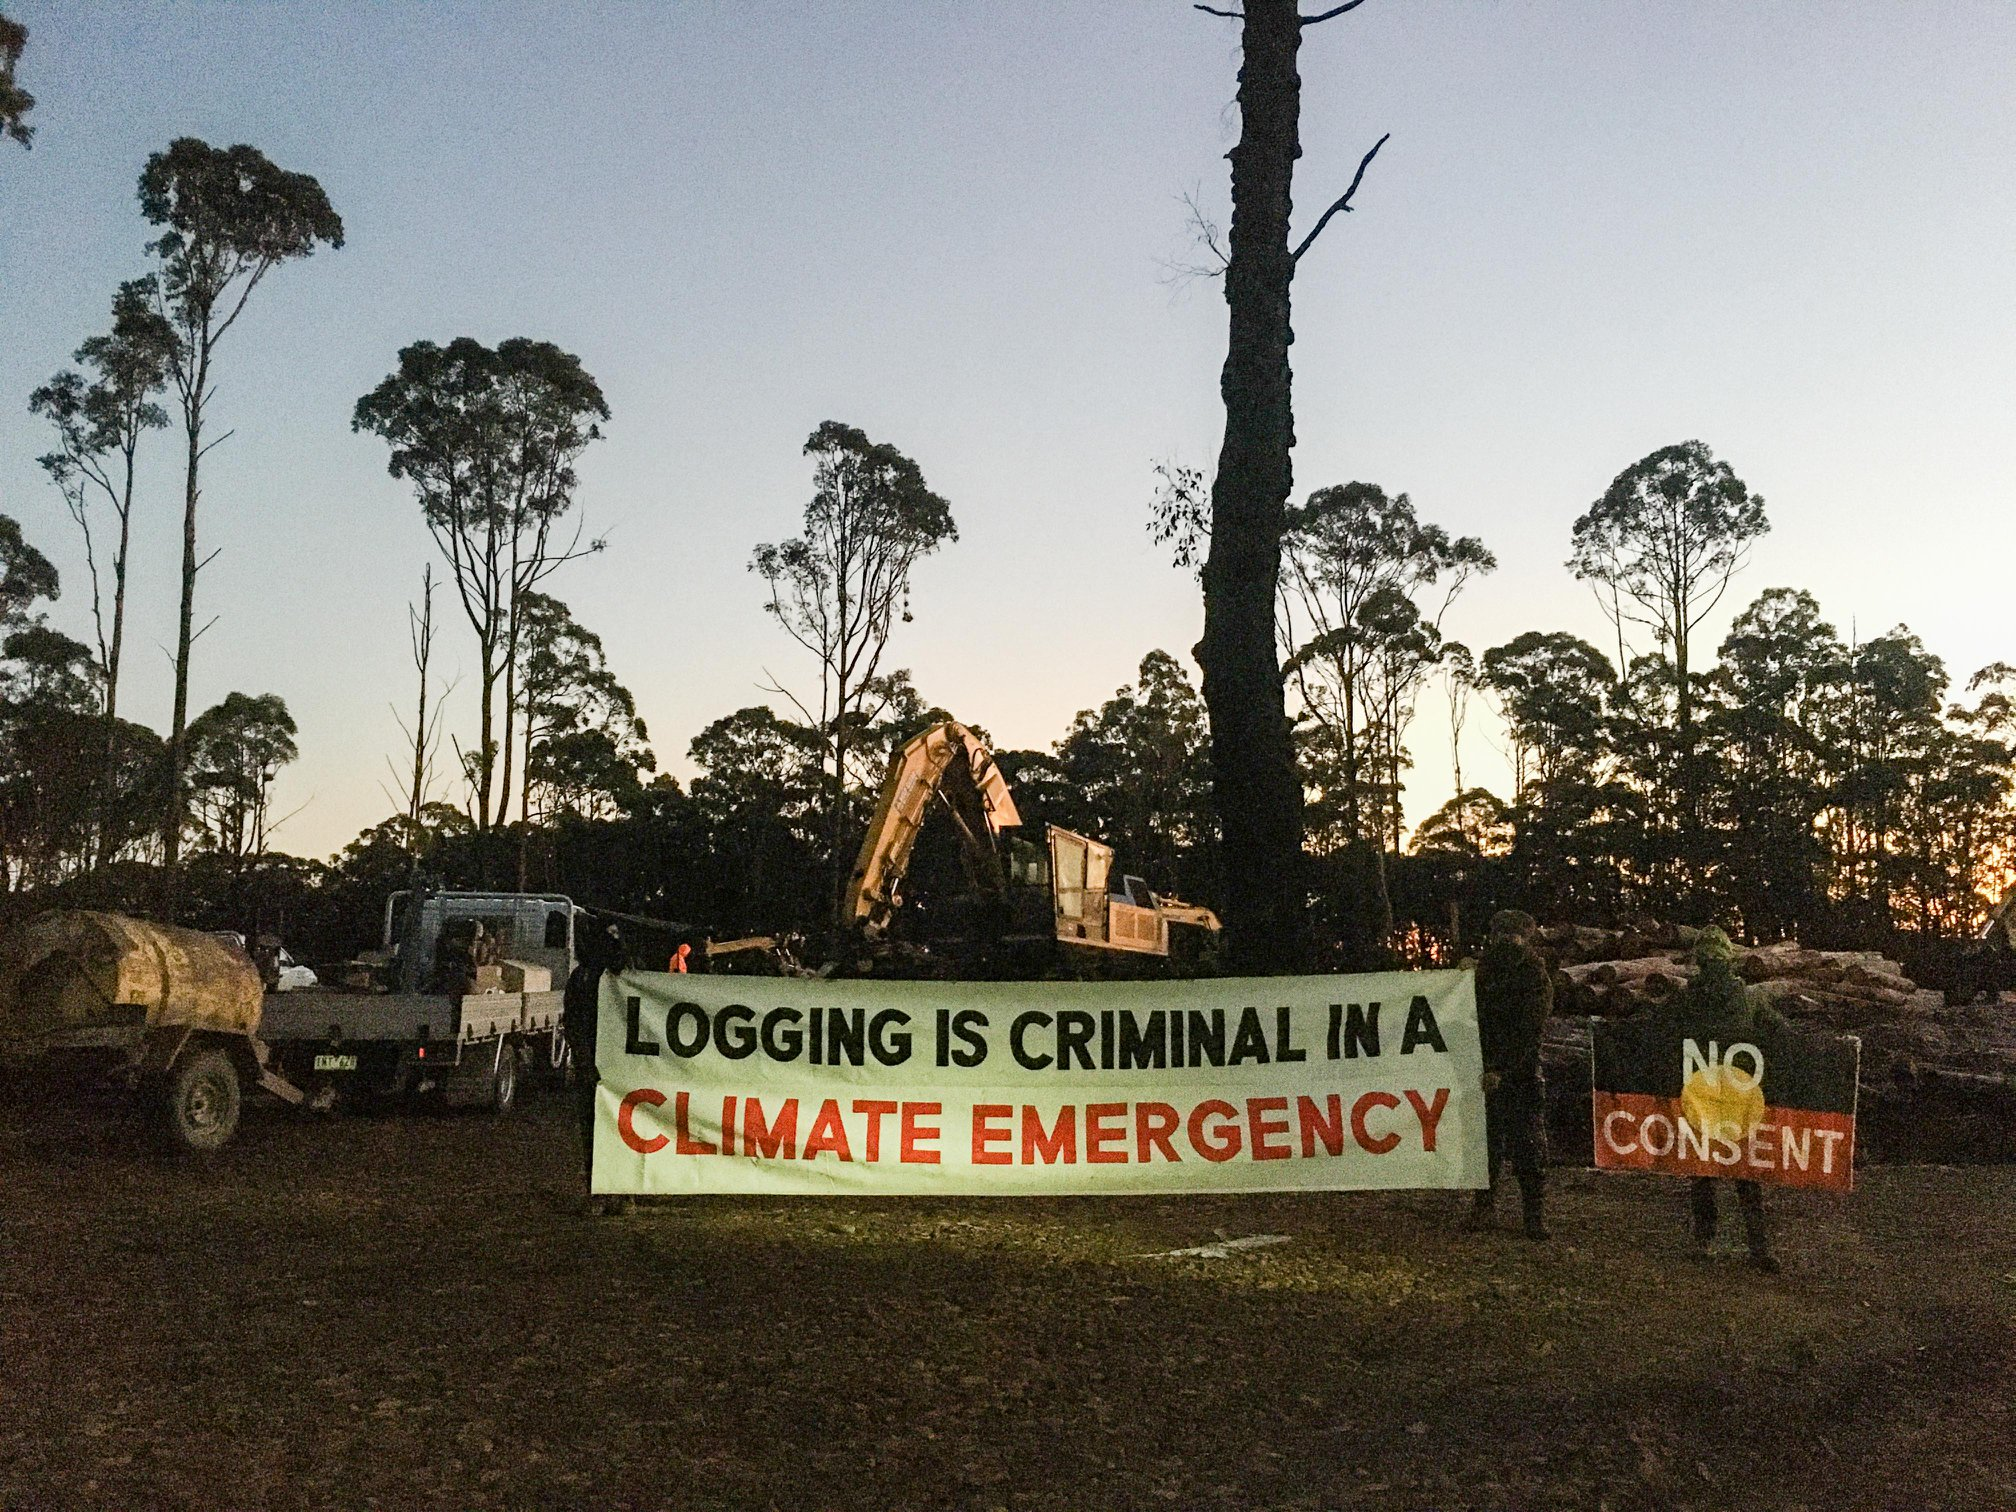 Logging is criminal in a climate emergency